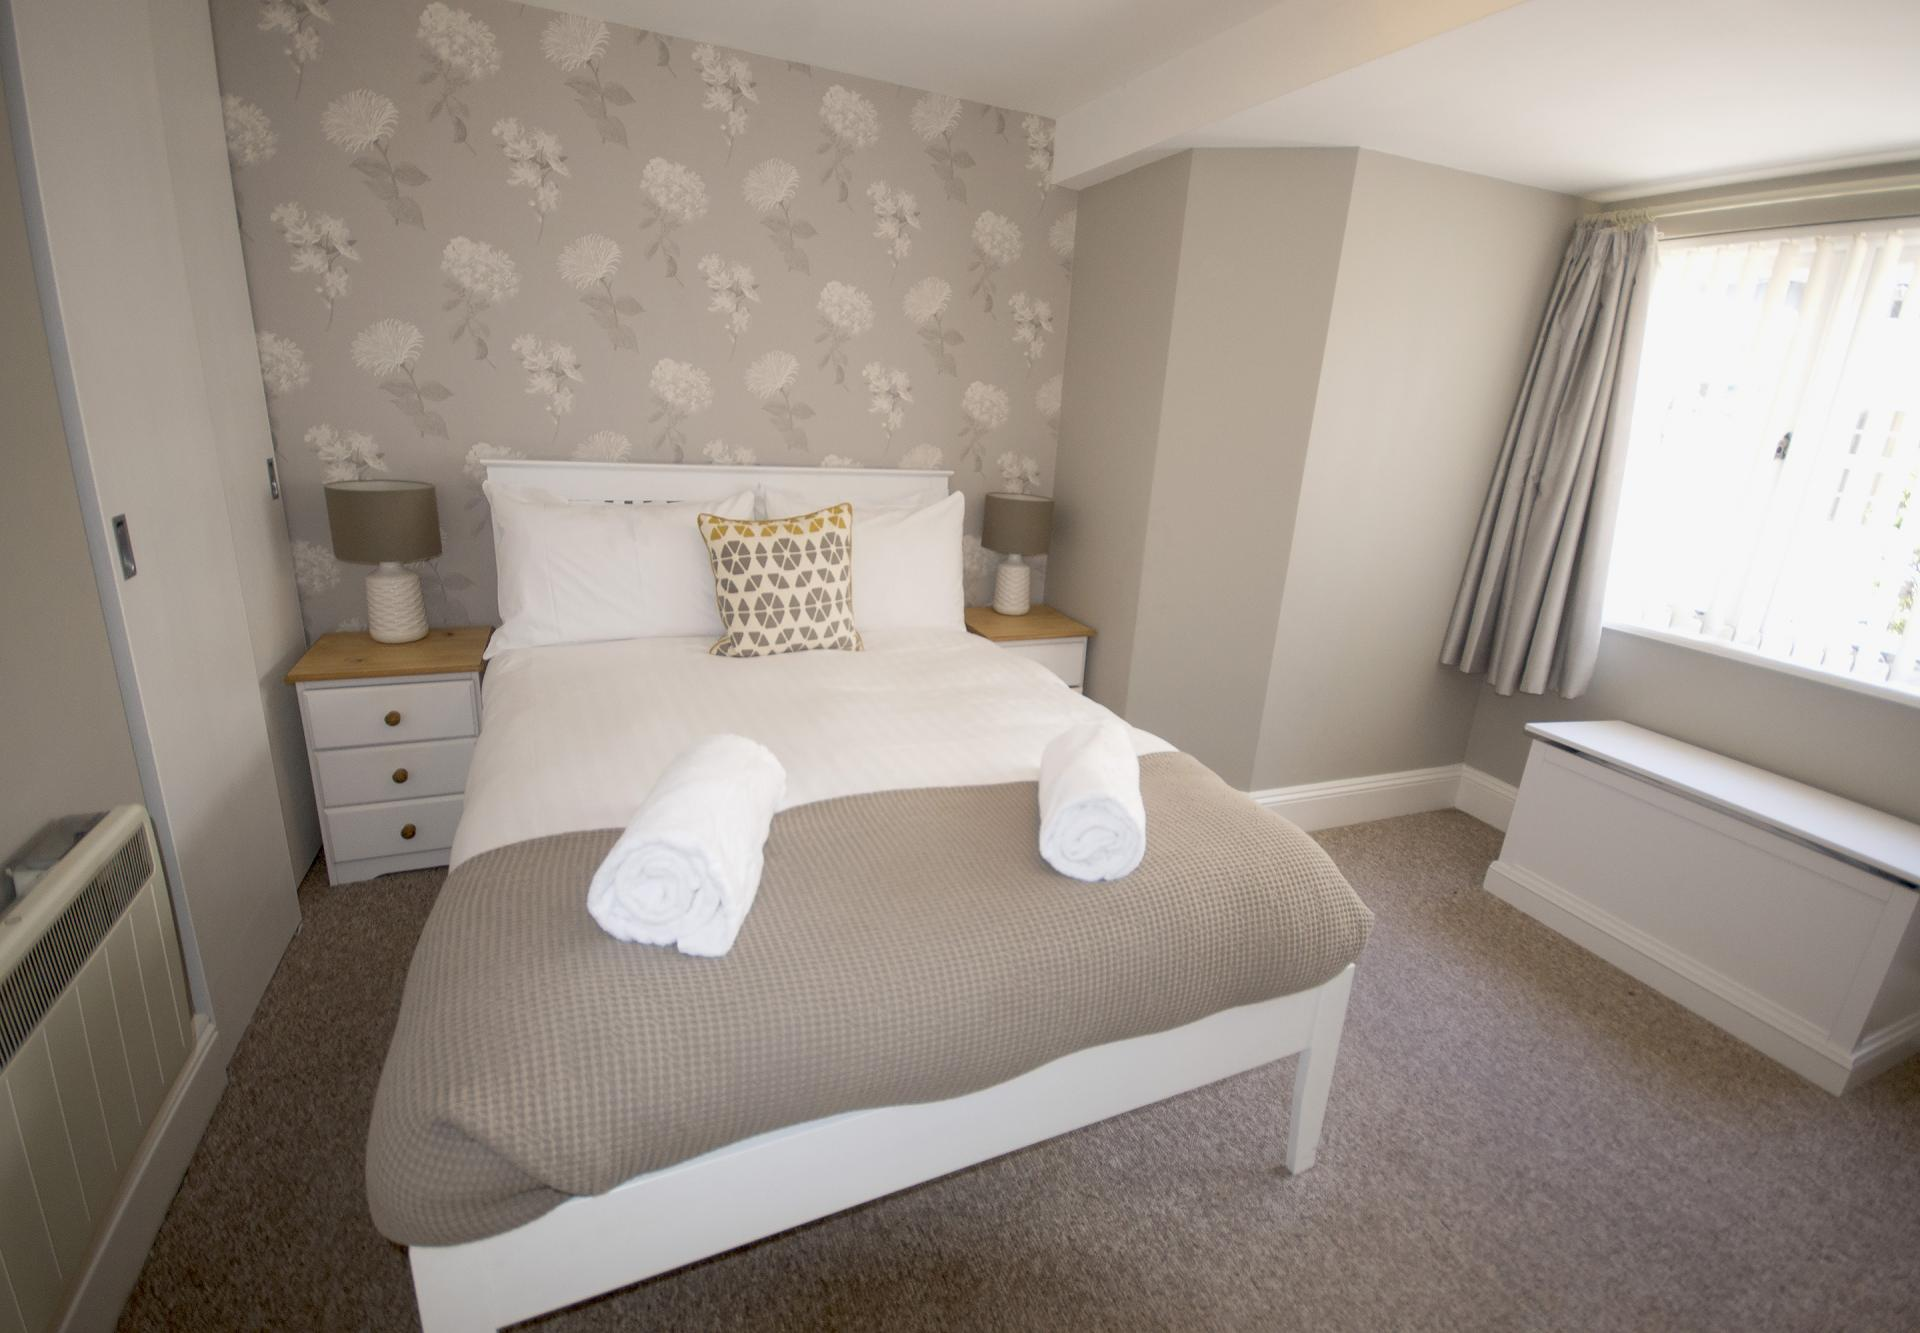 Towels at Trinity Mews Apartment, Babbacombe, Torquay - Citybase Apartments